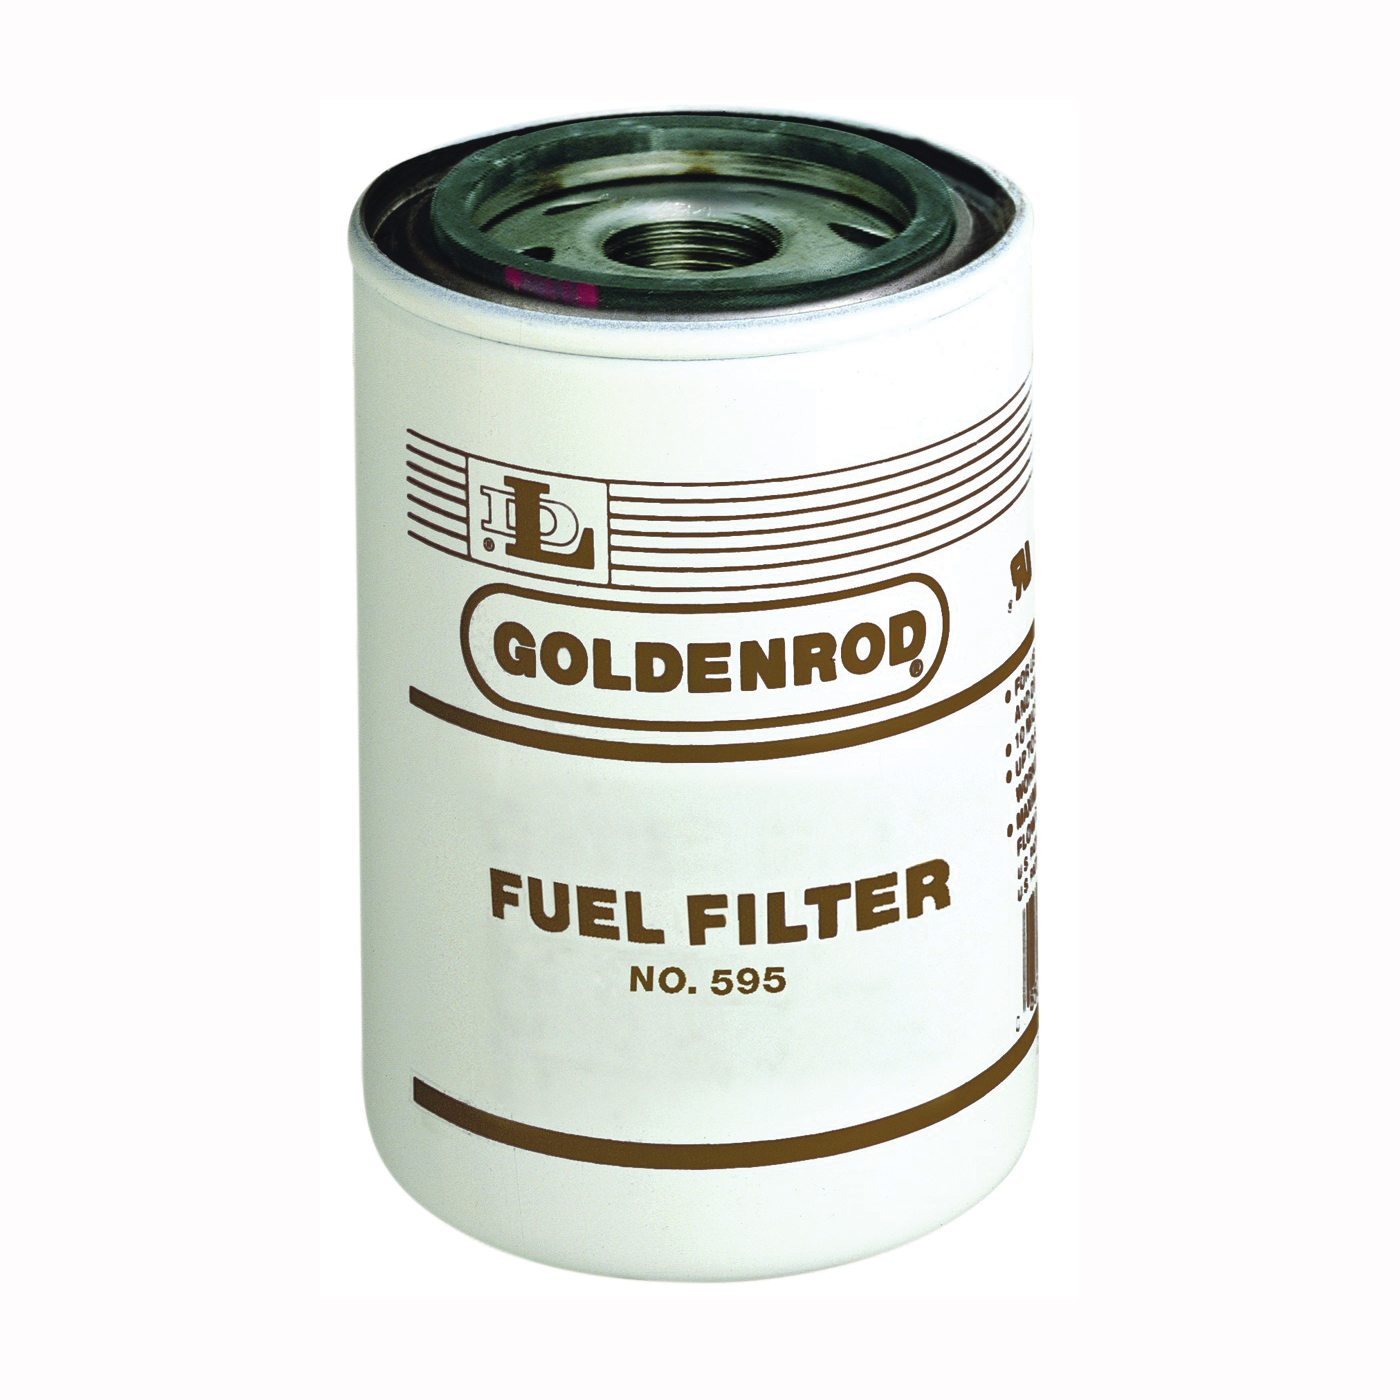 Picture of DL Goldenrod 595-5 Fuel Tank Filter, For: 595 Model 10 micron Fuel Filter